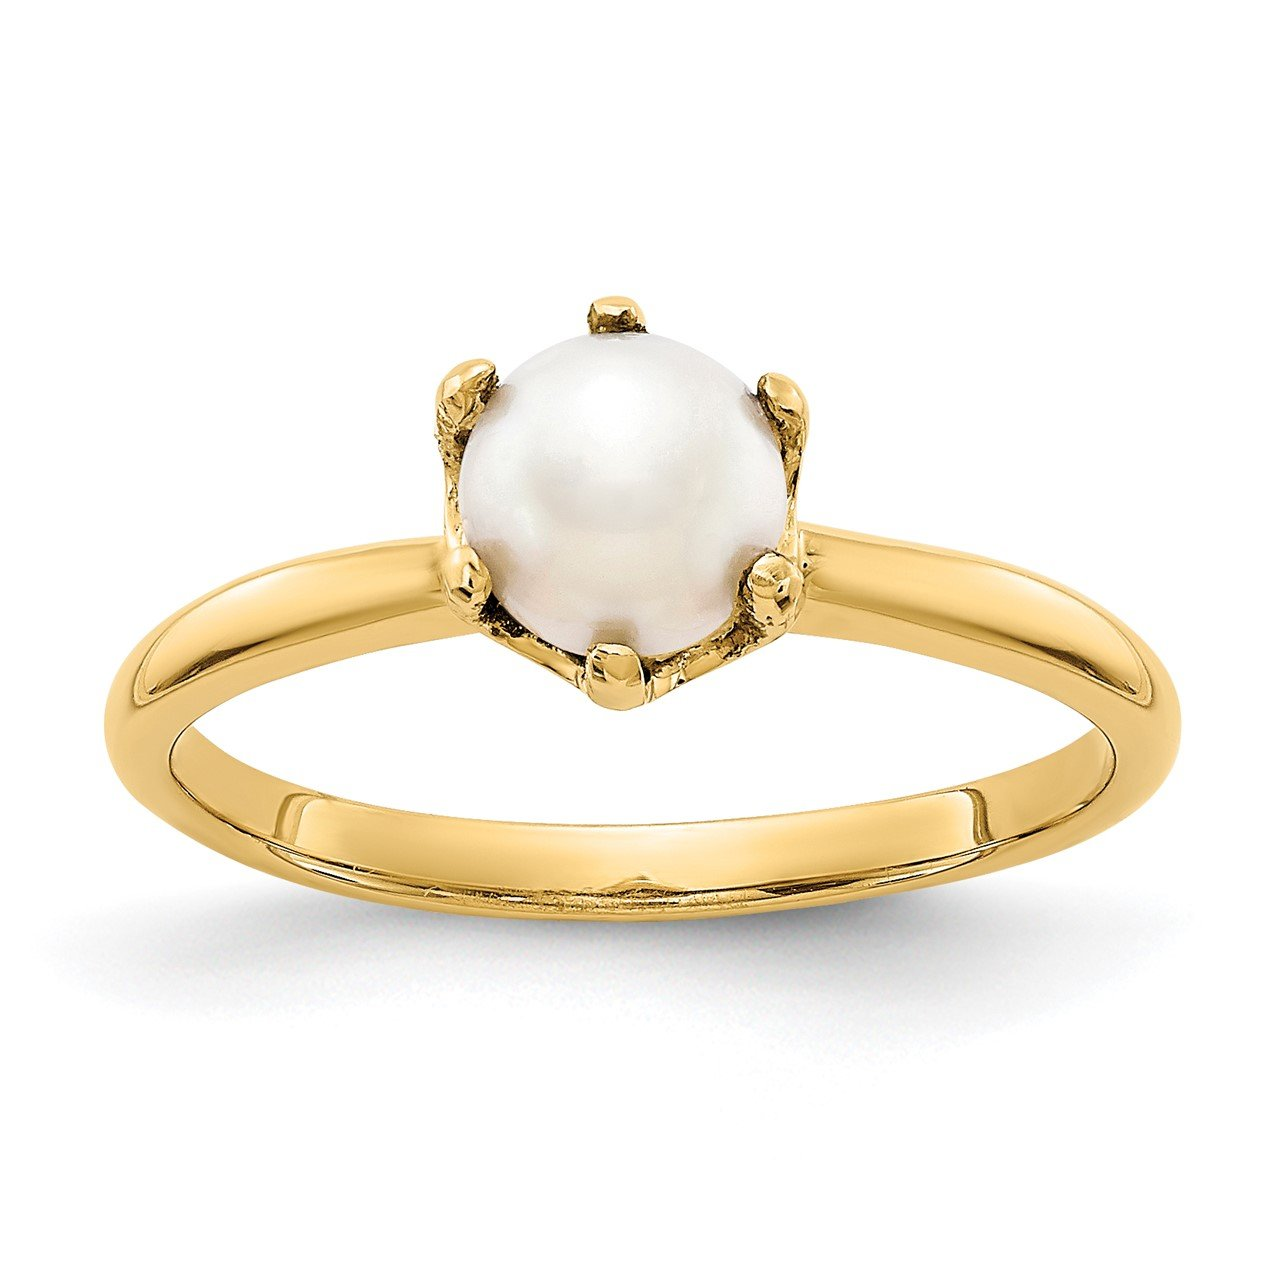 14k 5.5mm FW Cultured Pearl ring